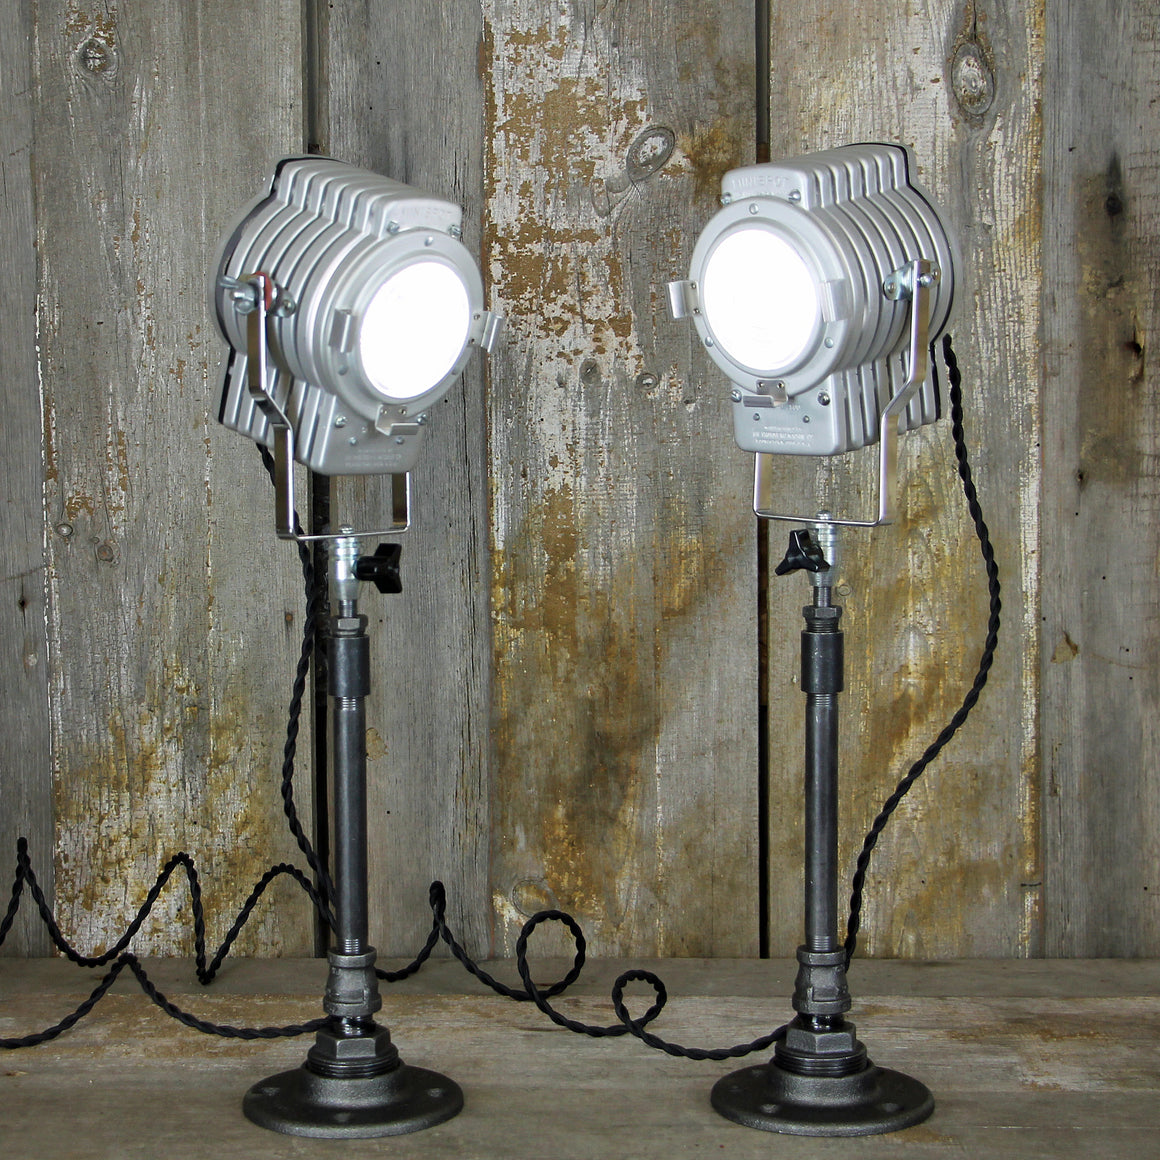 Industrial Table Lamps - Photo Spot Light - No. 2018 - The Lighting Works